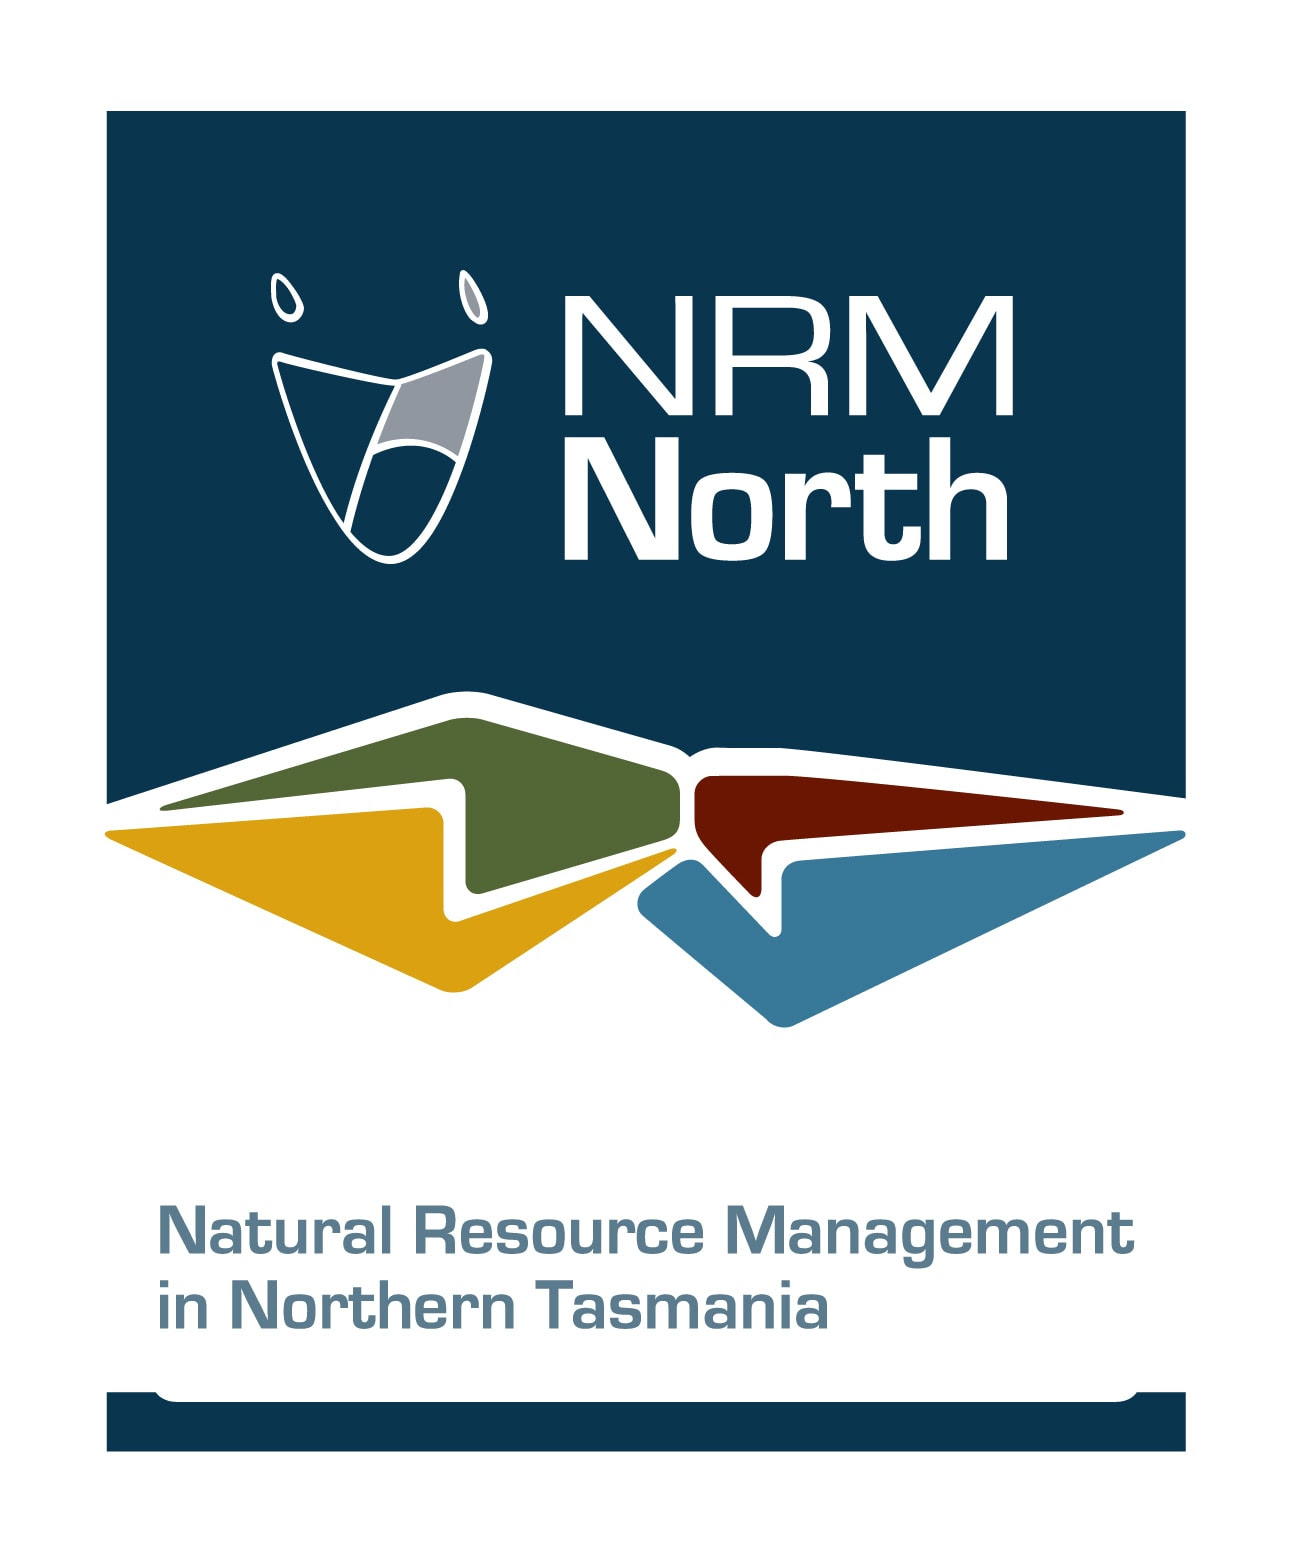 NRM north logo